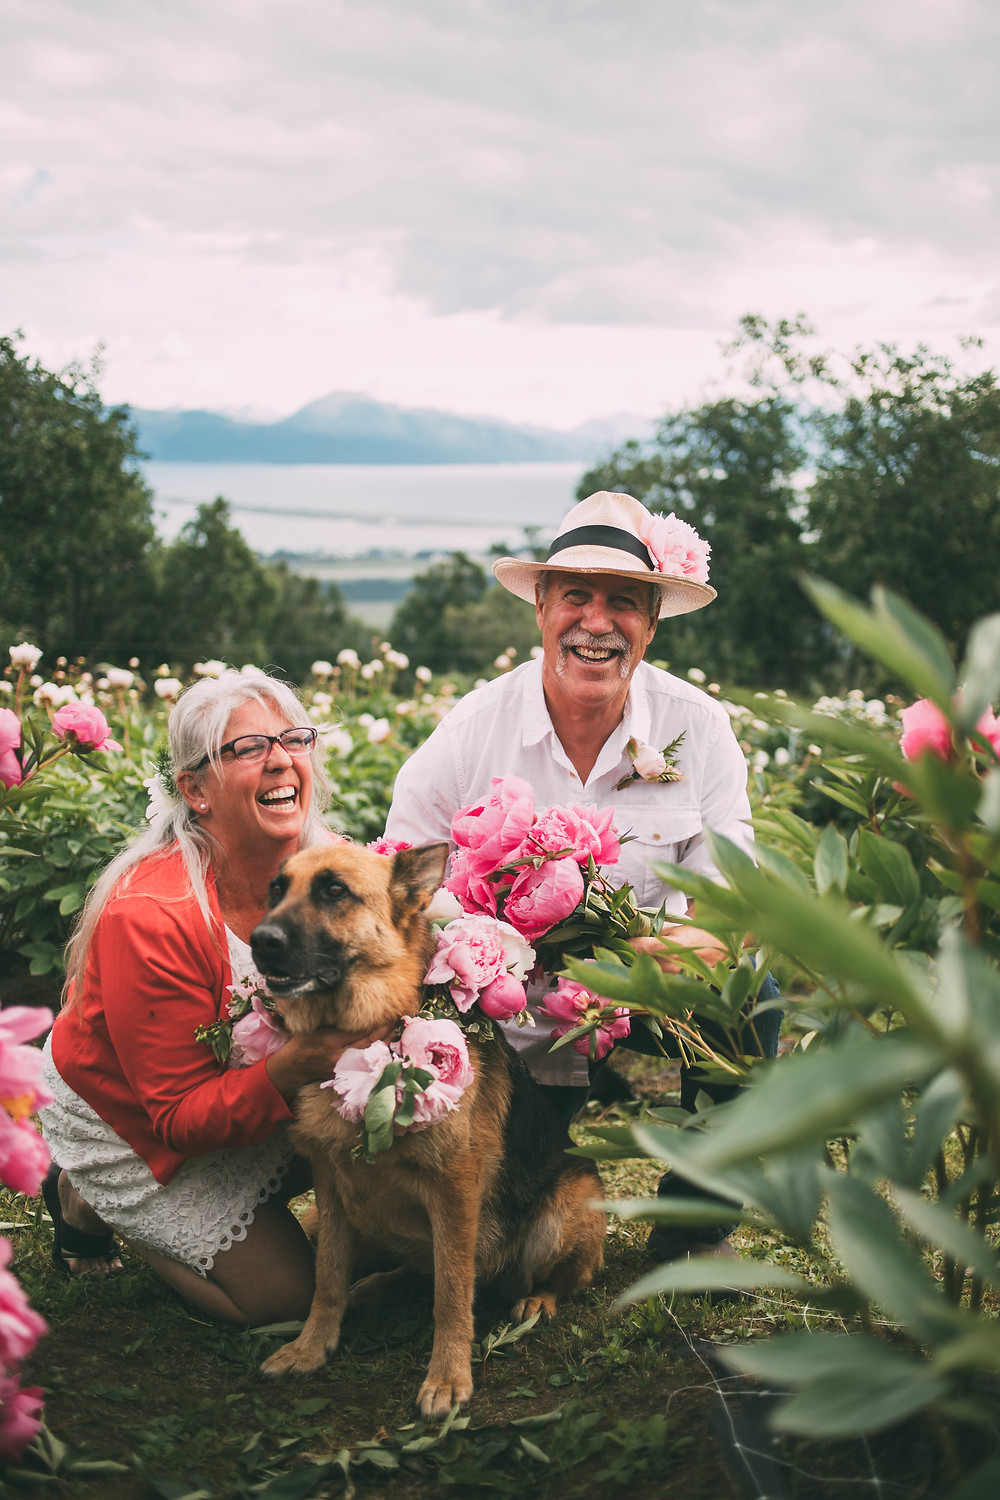 beth vandsant of scenic place peonies in homer ak scenic place peony farm, field to vase dinner, wedding and event venue, homer, alaska, AK